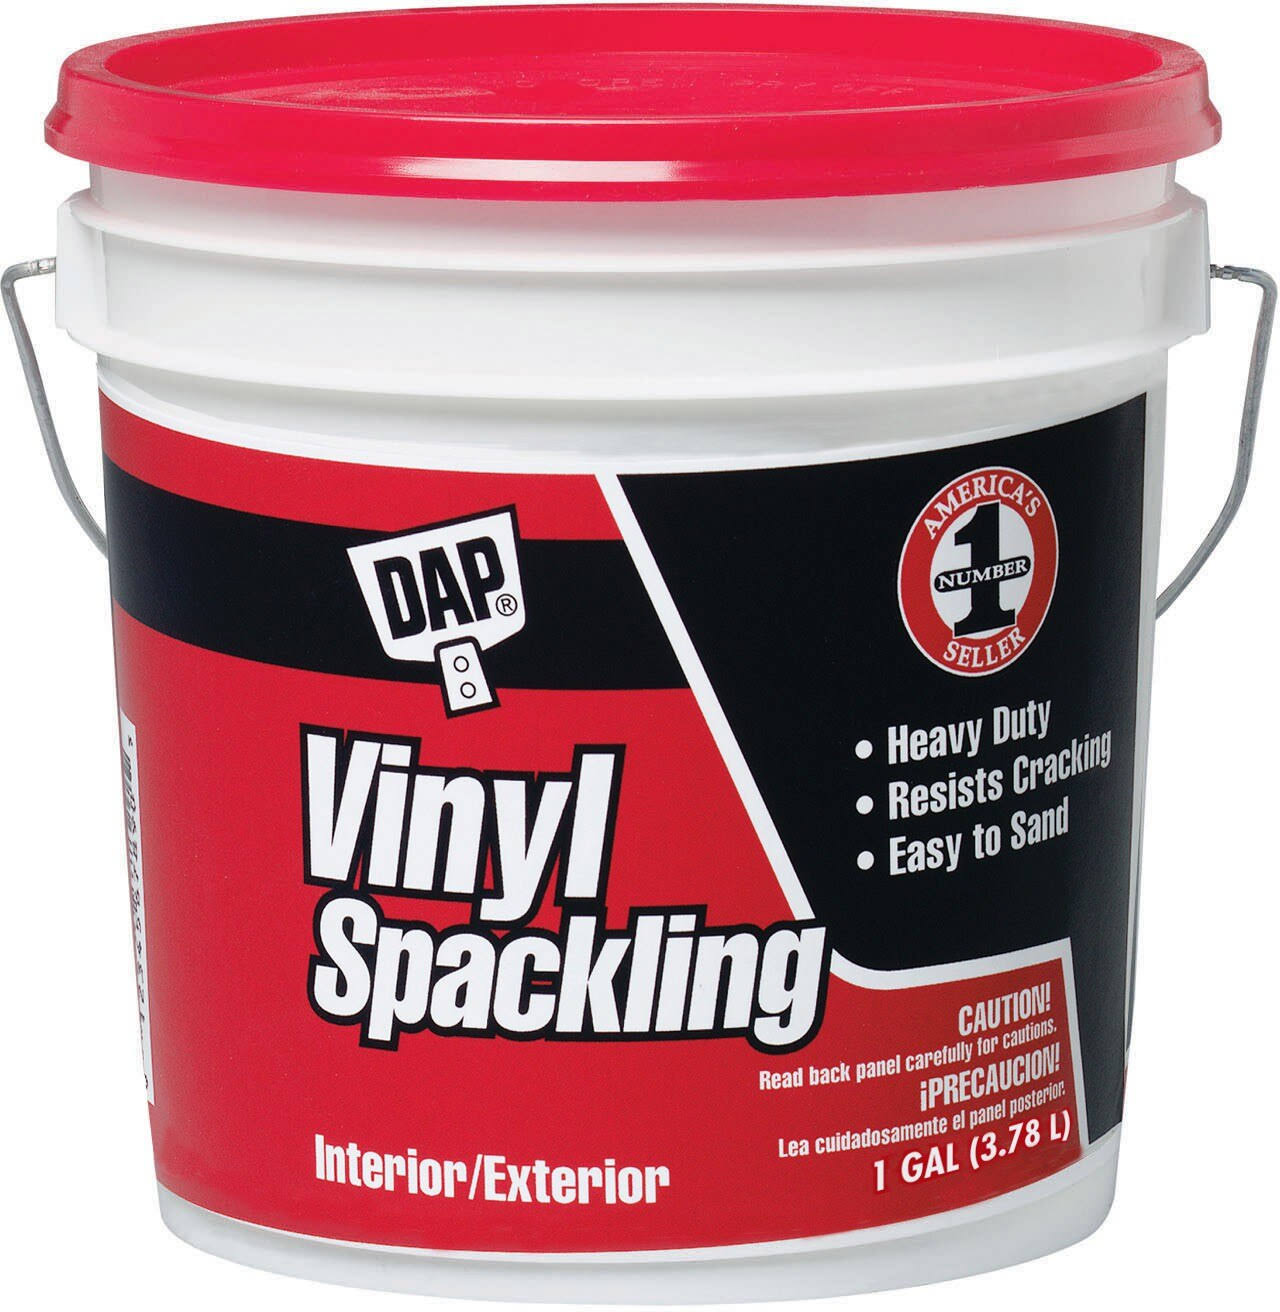 Dap All Purpose Vinyl Spackle Interior-Exterior Concrete Patcher - 1 Gallon, White